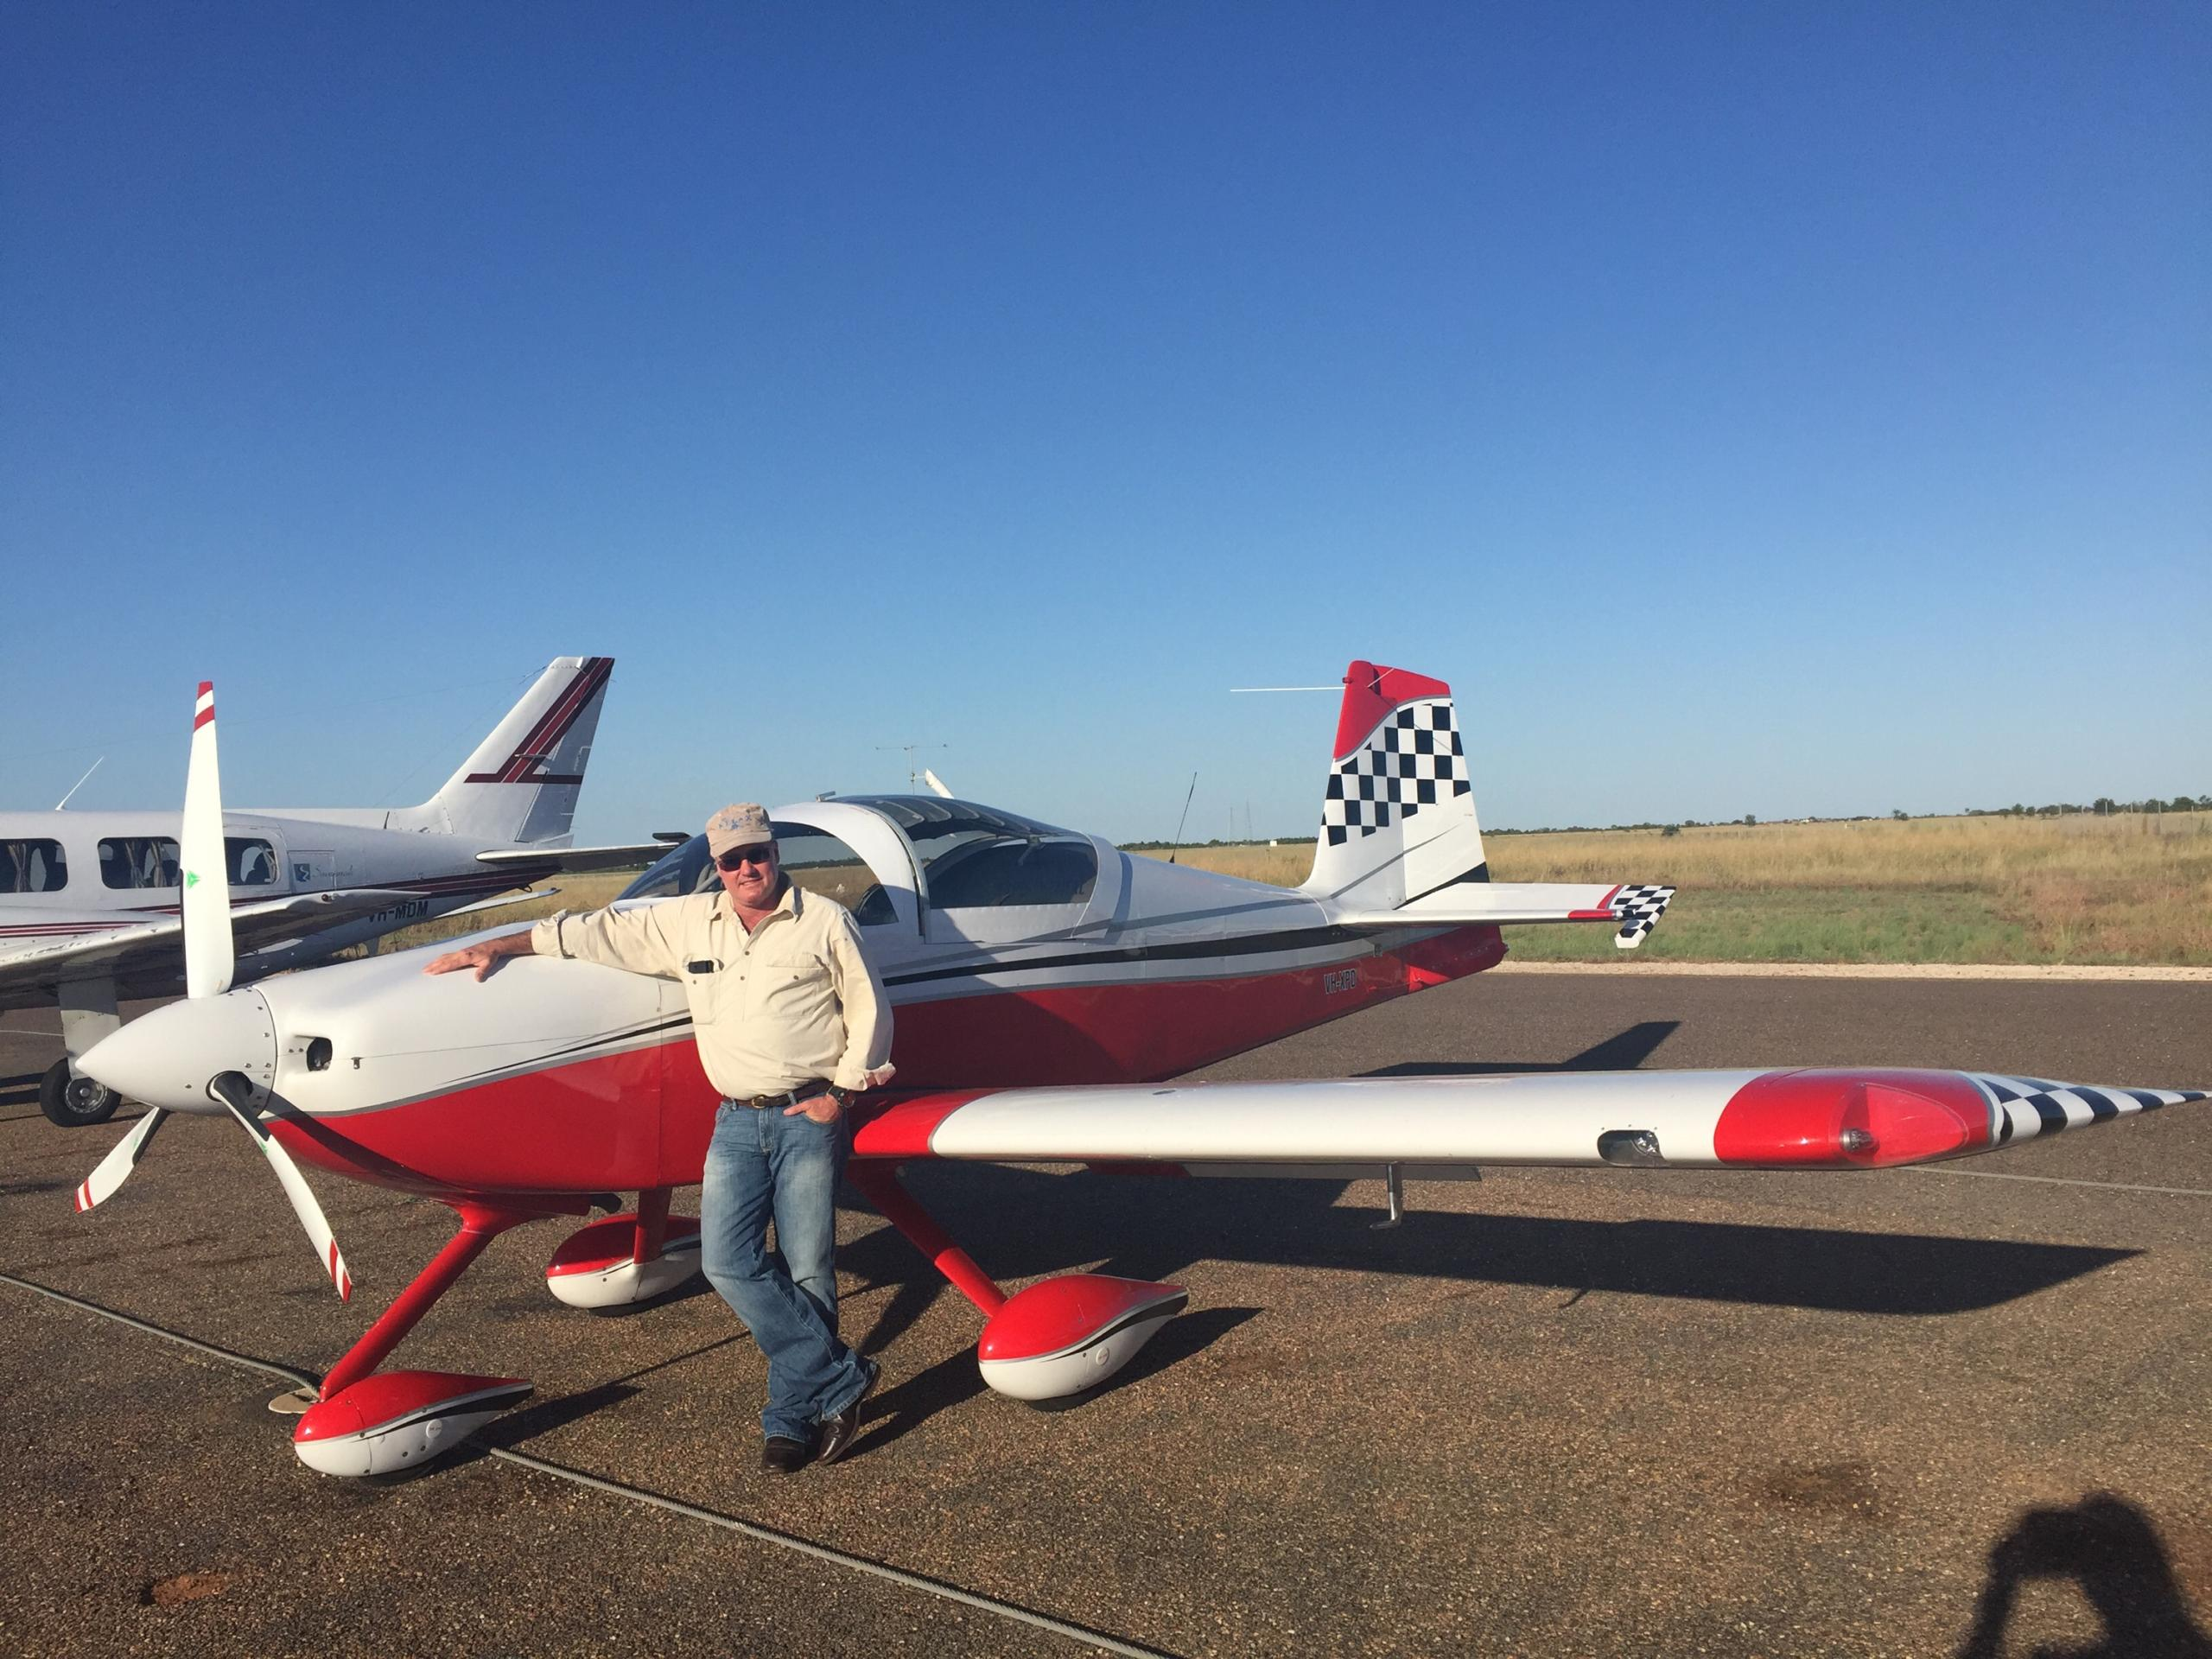 Bram Pollock with his trusty RV-7A